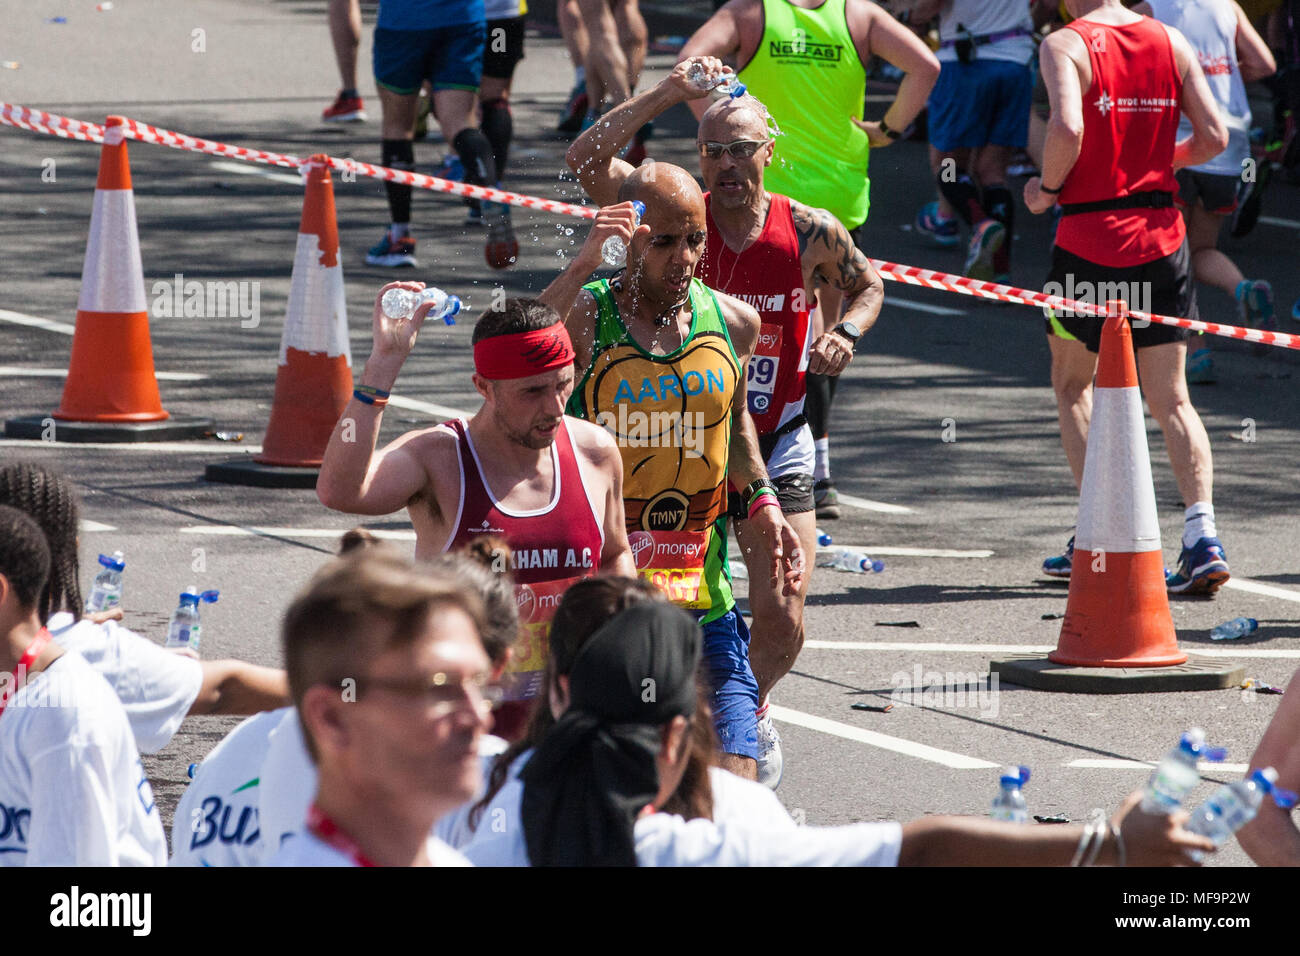 London, UK. 22nd April, 2018. Runners take on water in record temperatures at the Virgin Money London Marathon. - Stock Image